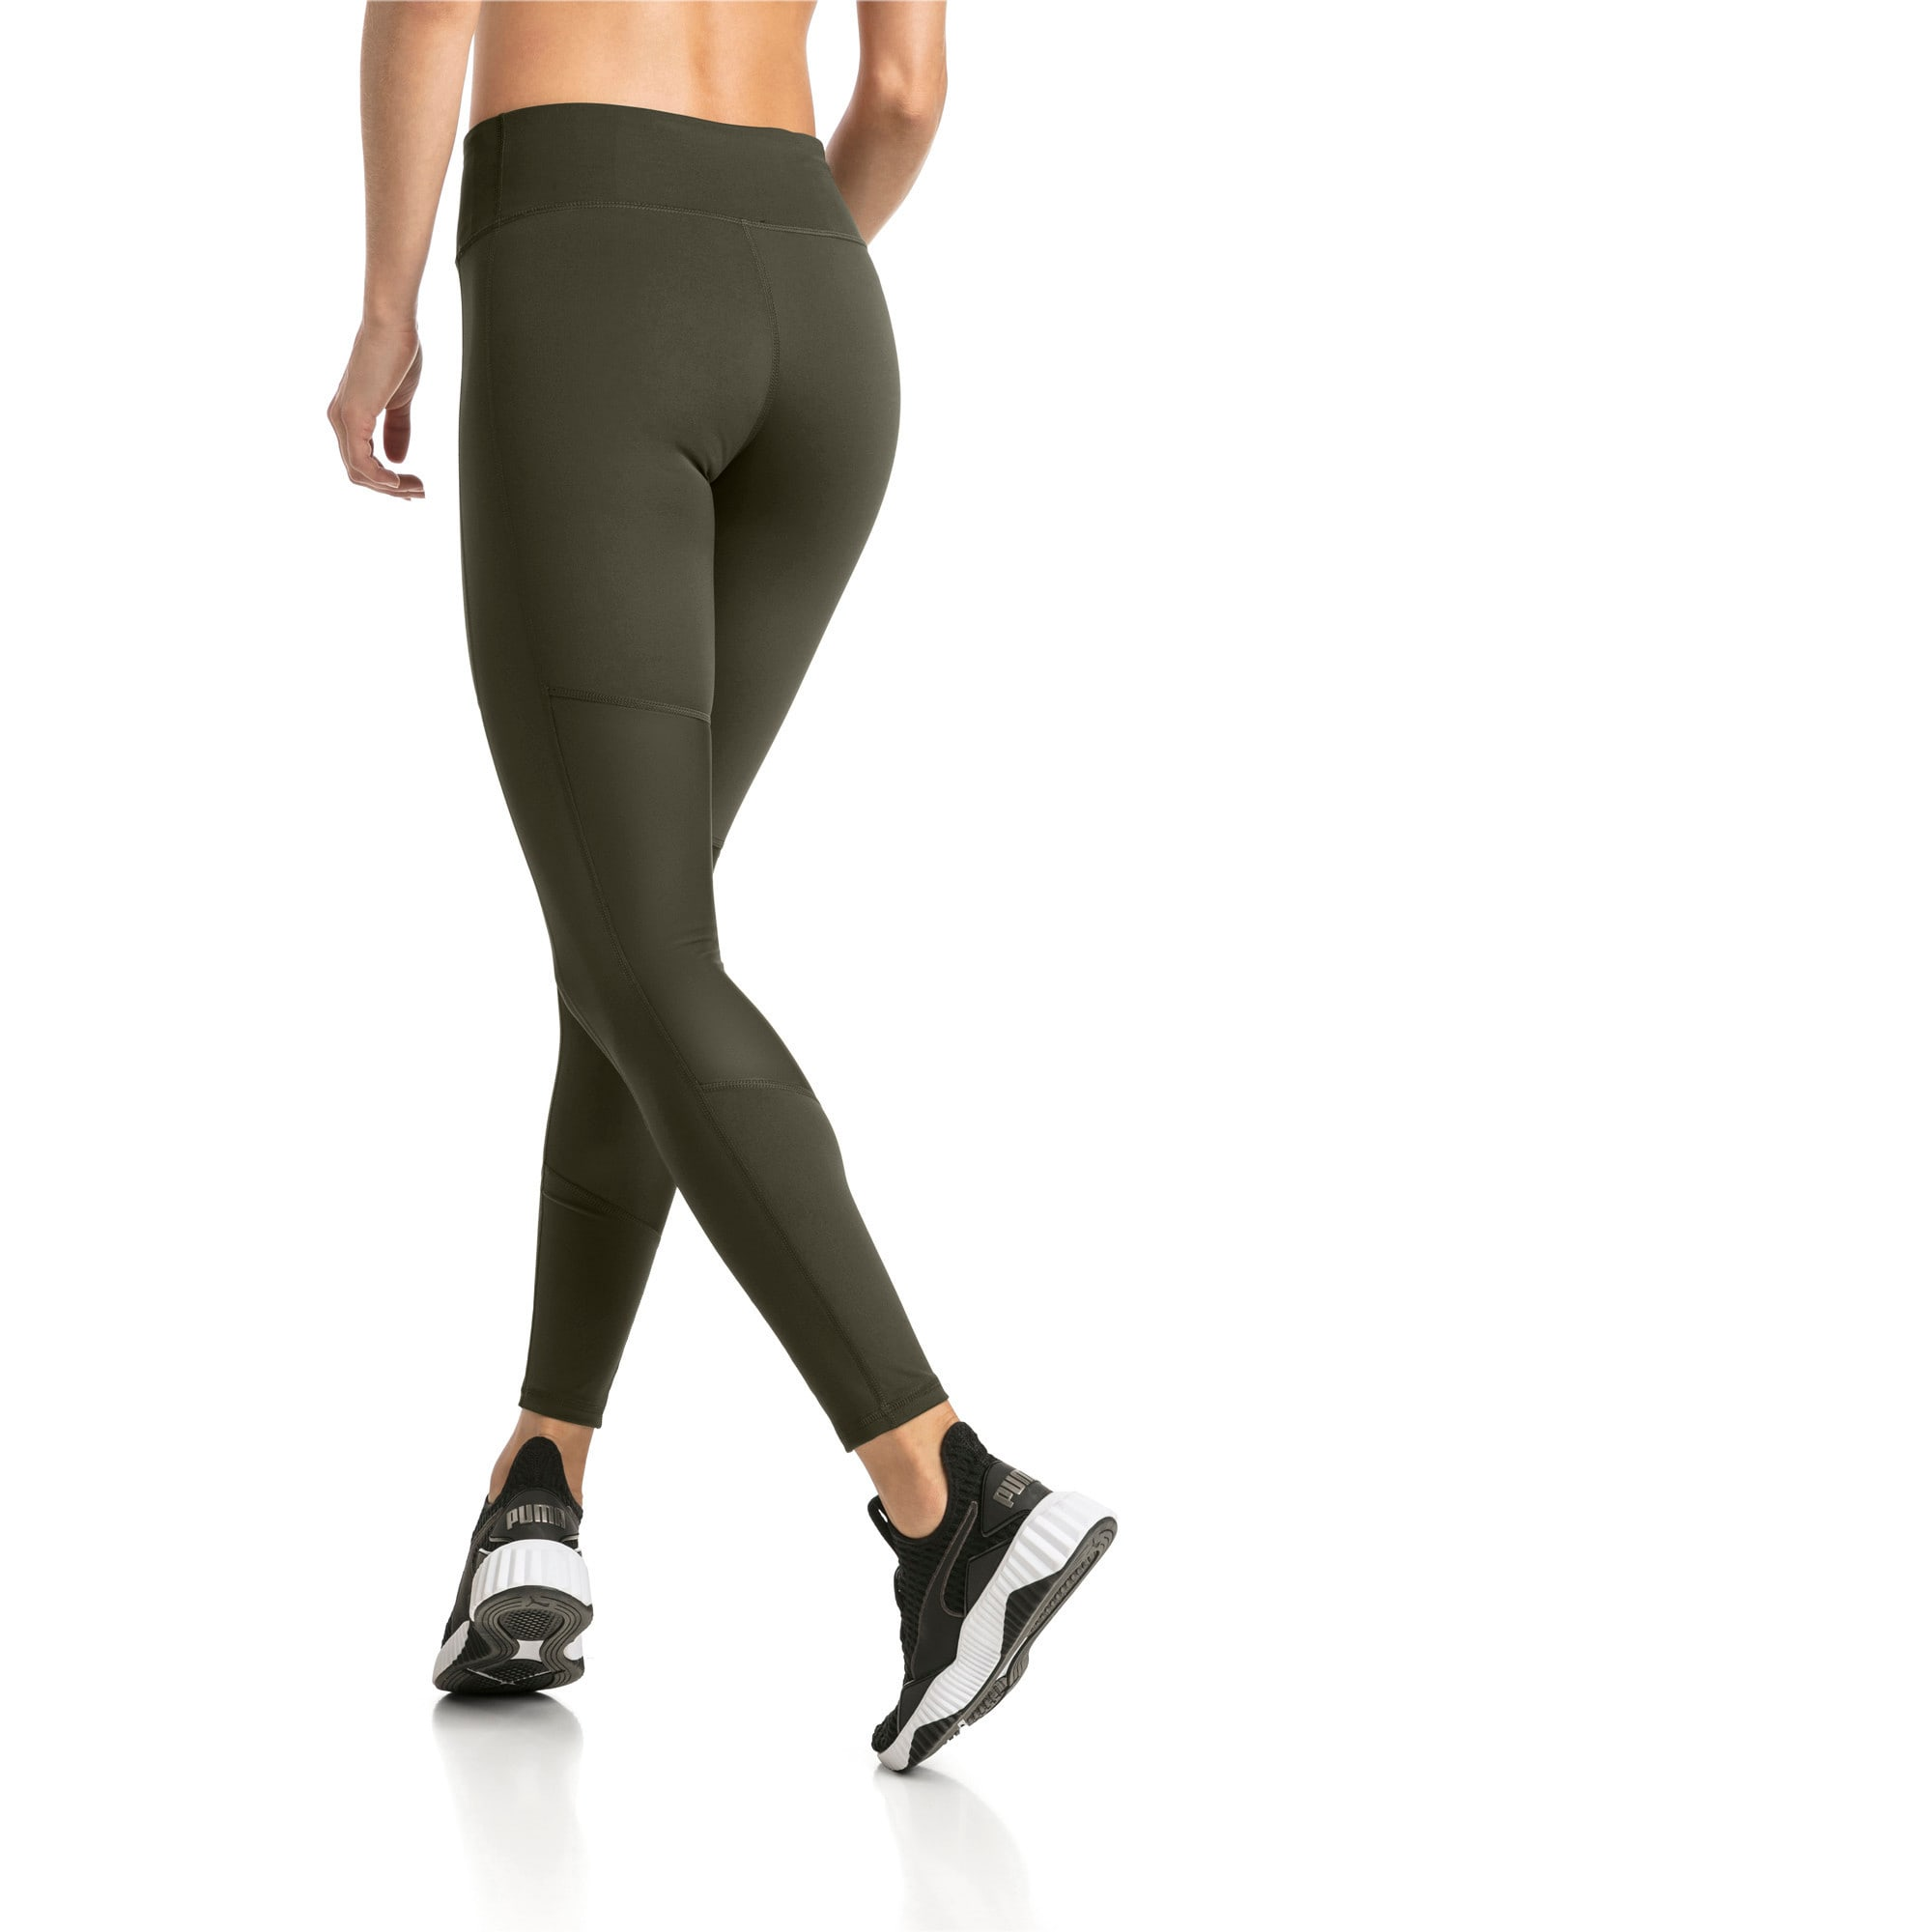 Thumbnail 2 of Always On Solid Women's 7/8 Training Leggings, Forest Night, medium-IND